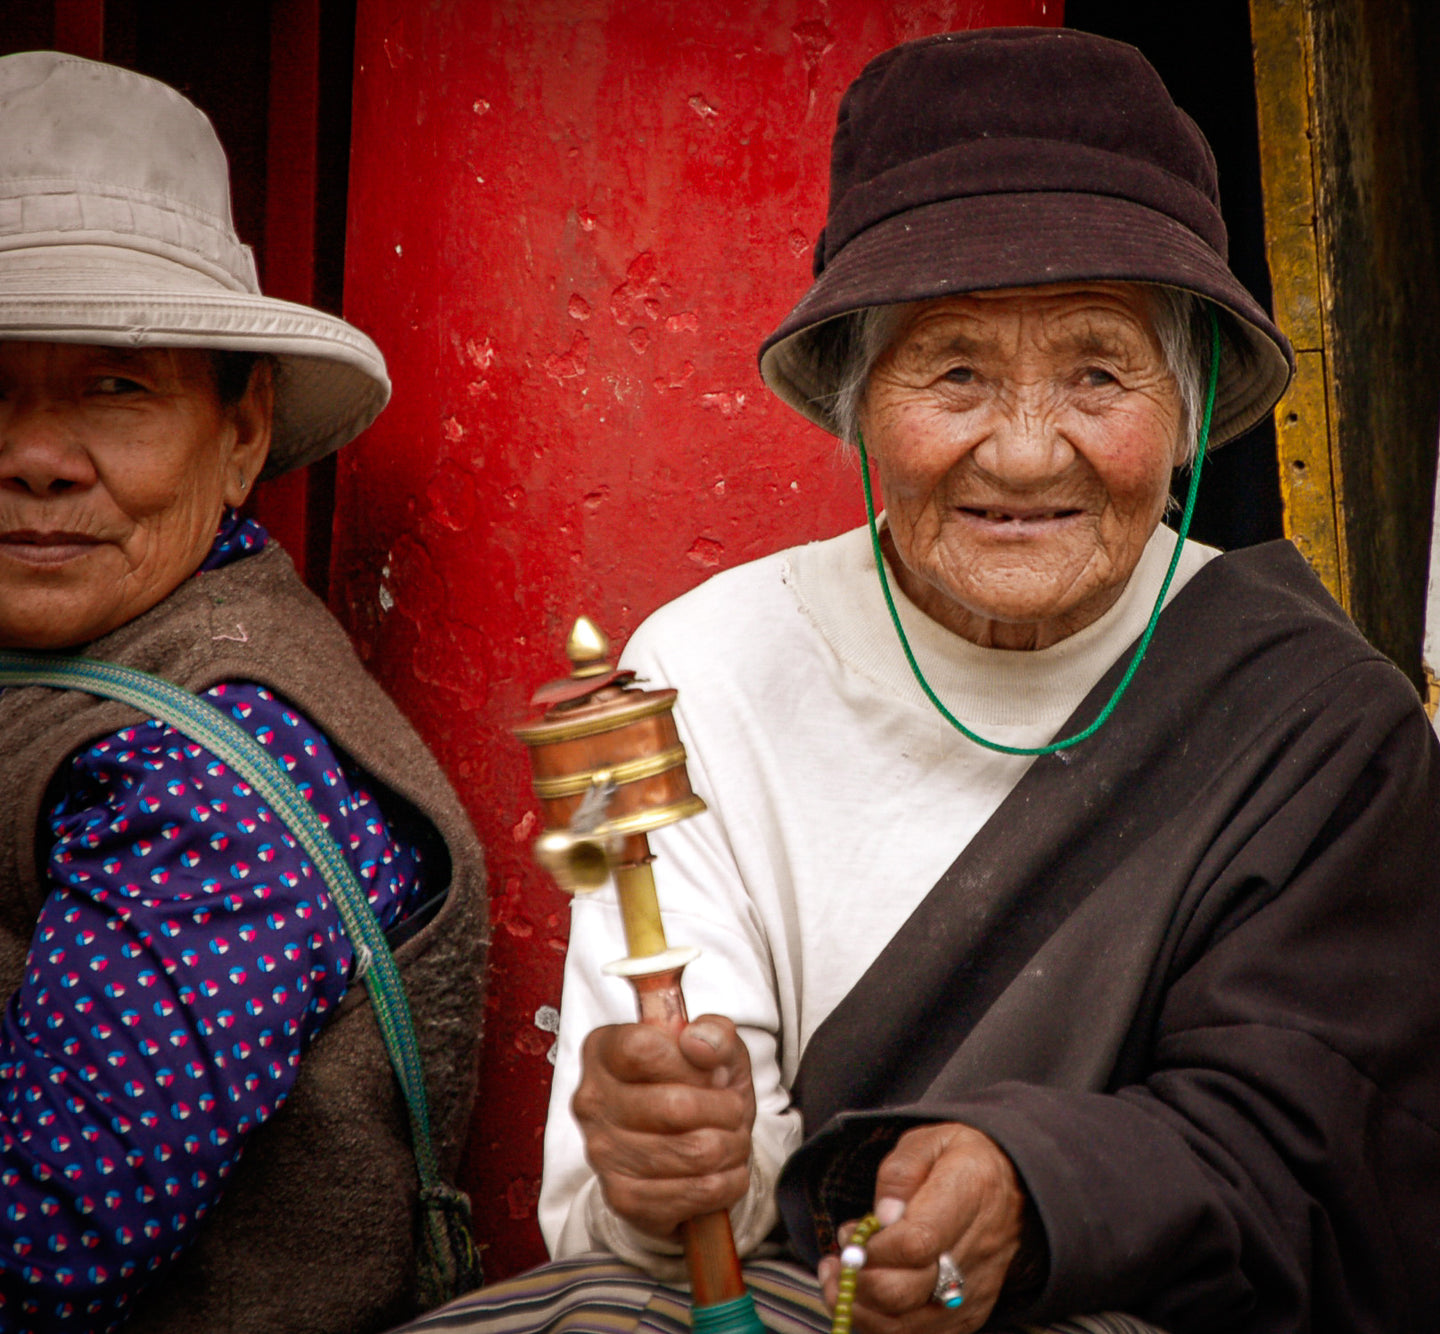 Prayer wheels in Tibet - Tracy McCrackin Photography